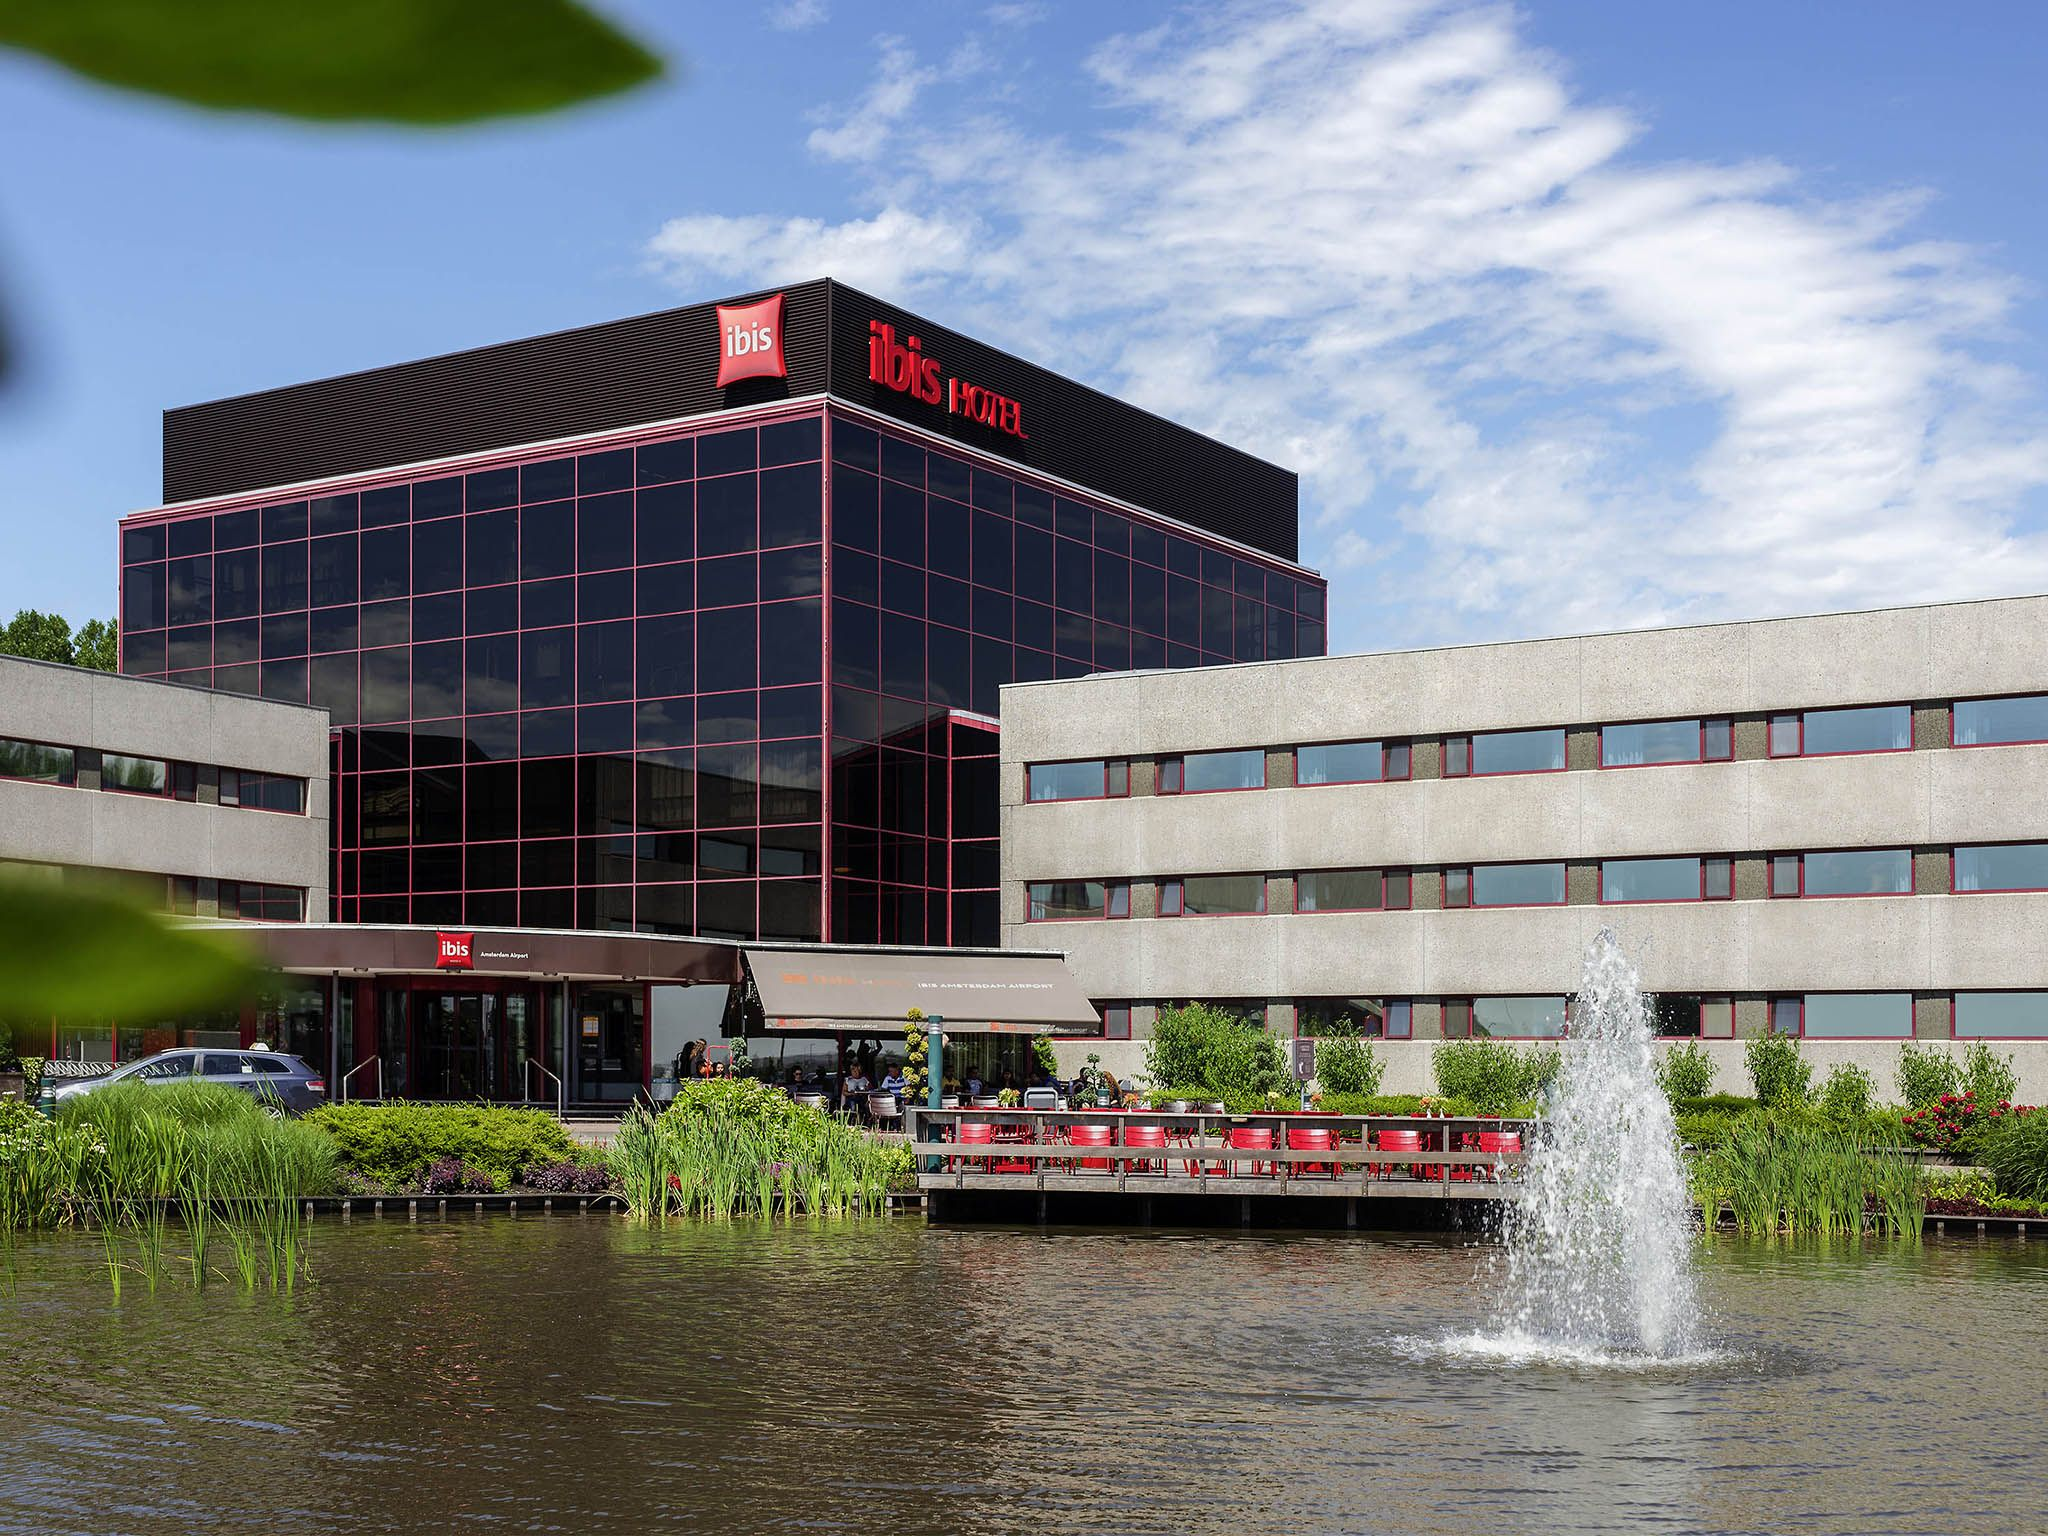 Stay Over In A Hotel Near Amsterdam Airport Next Time You Visit